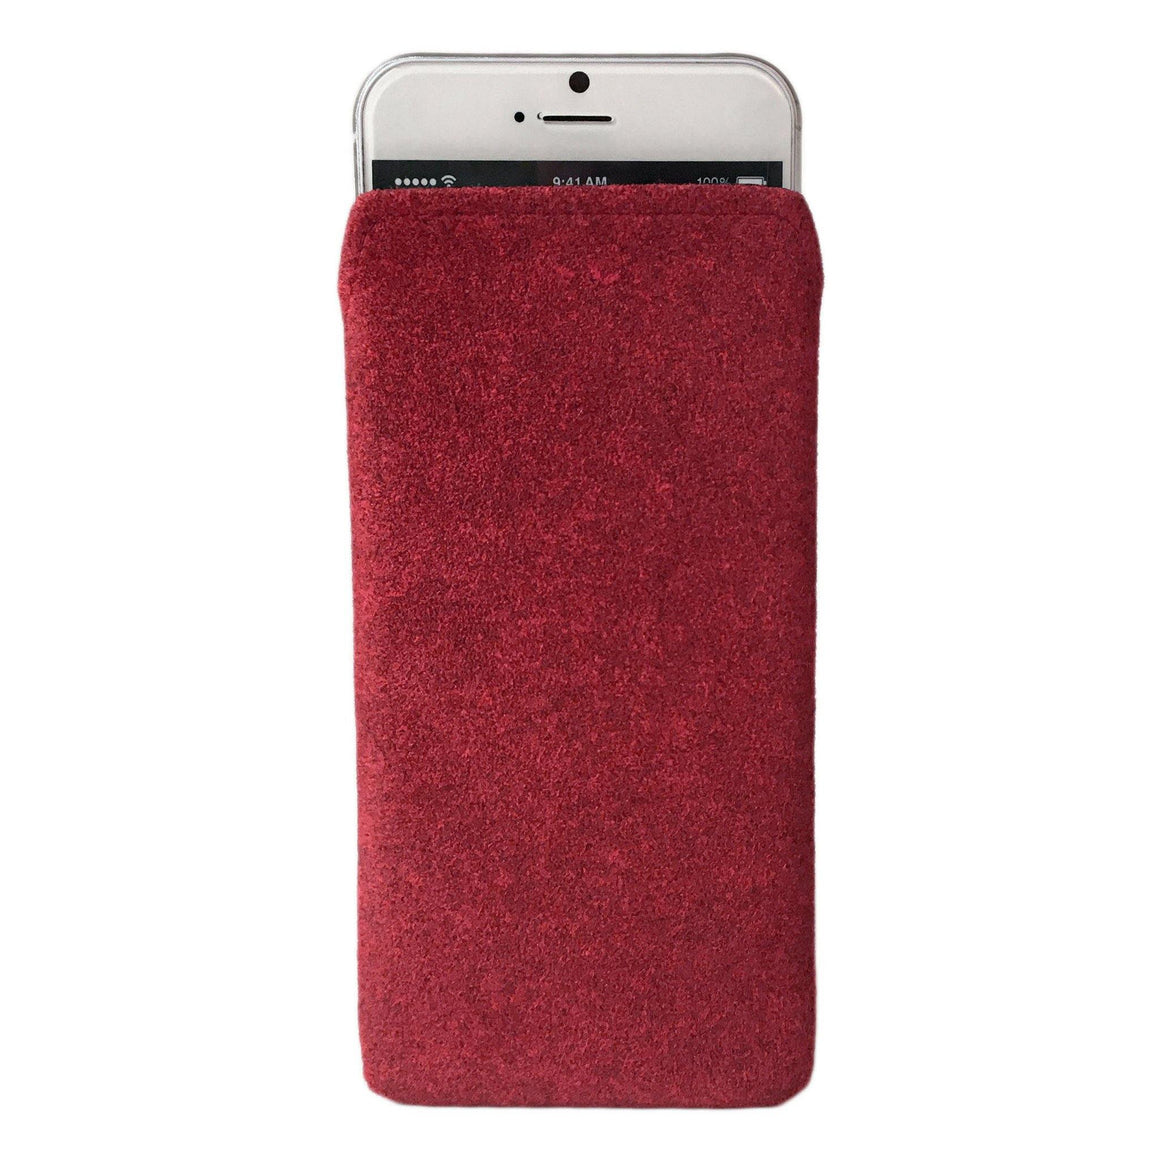 iPhone Alcantara Pouch Pashma Reds - Wrappers UK